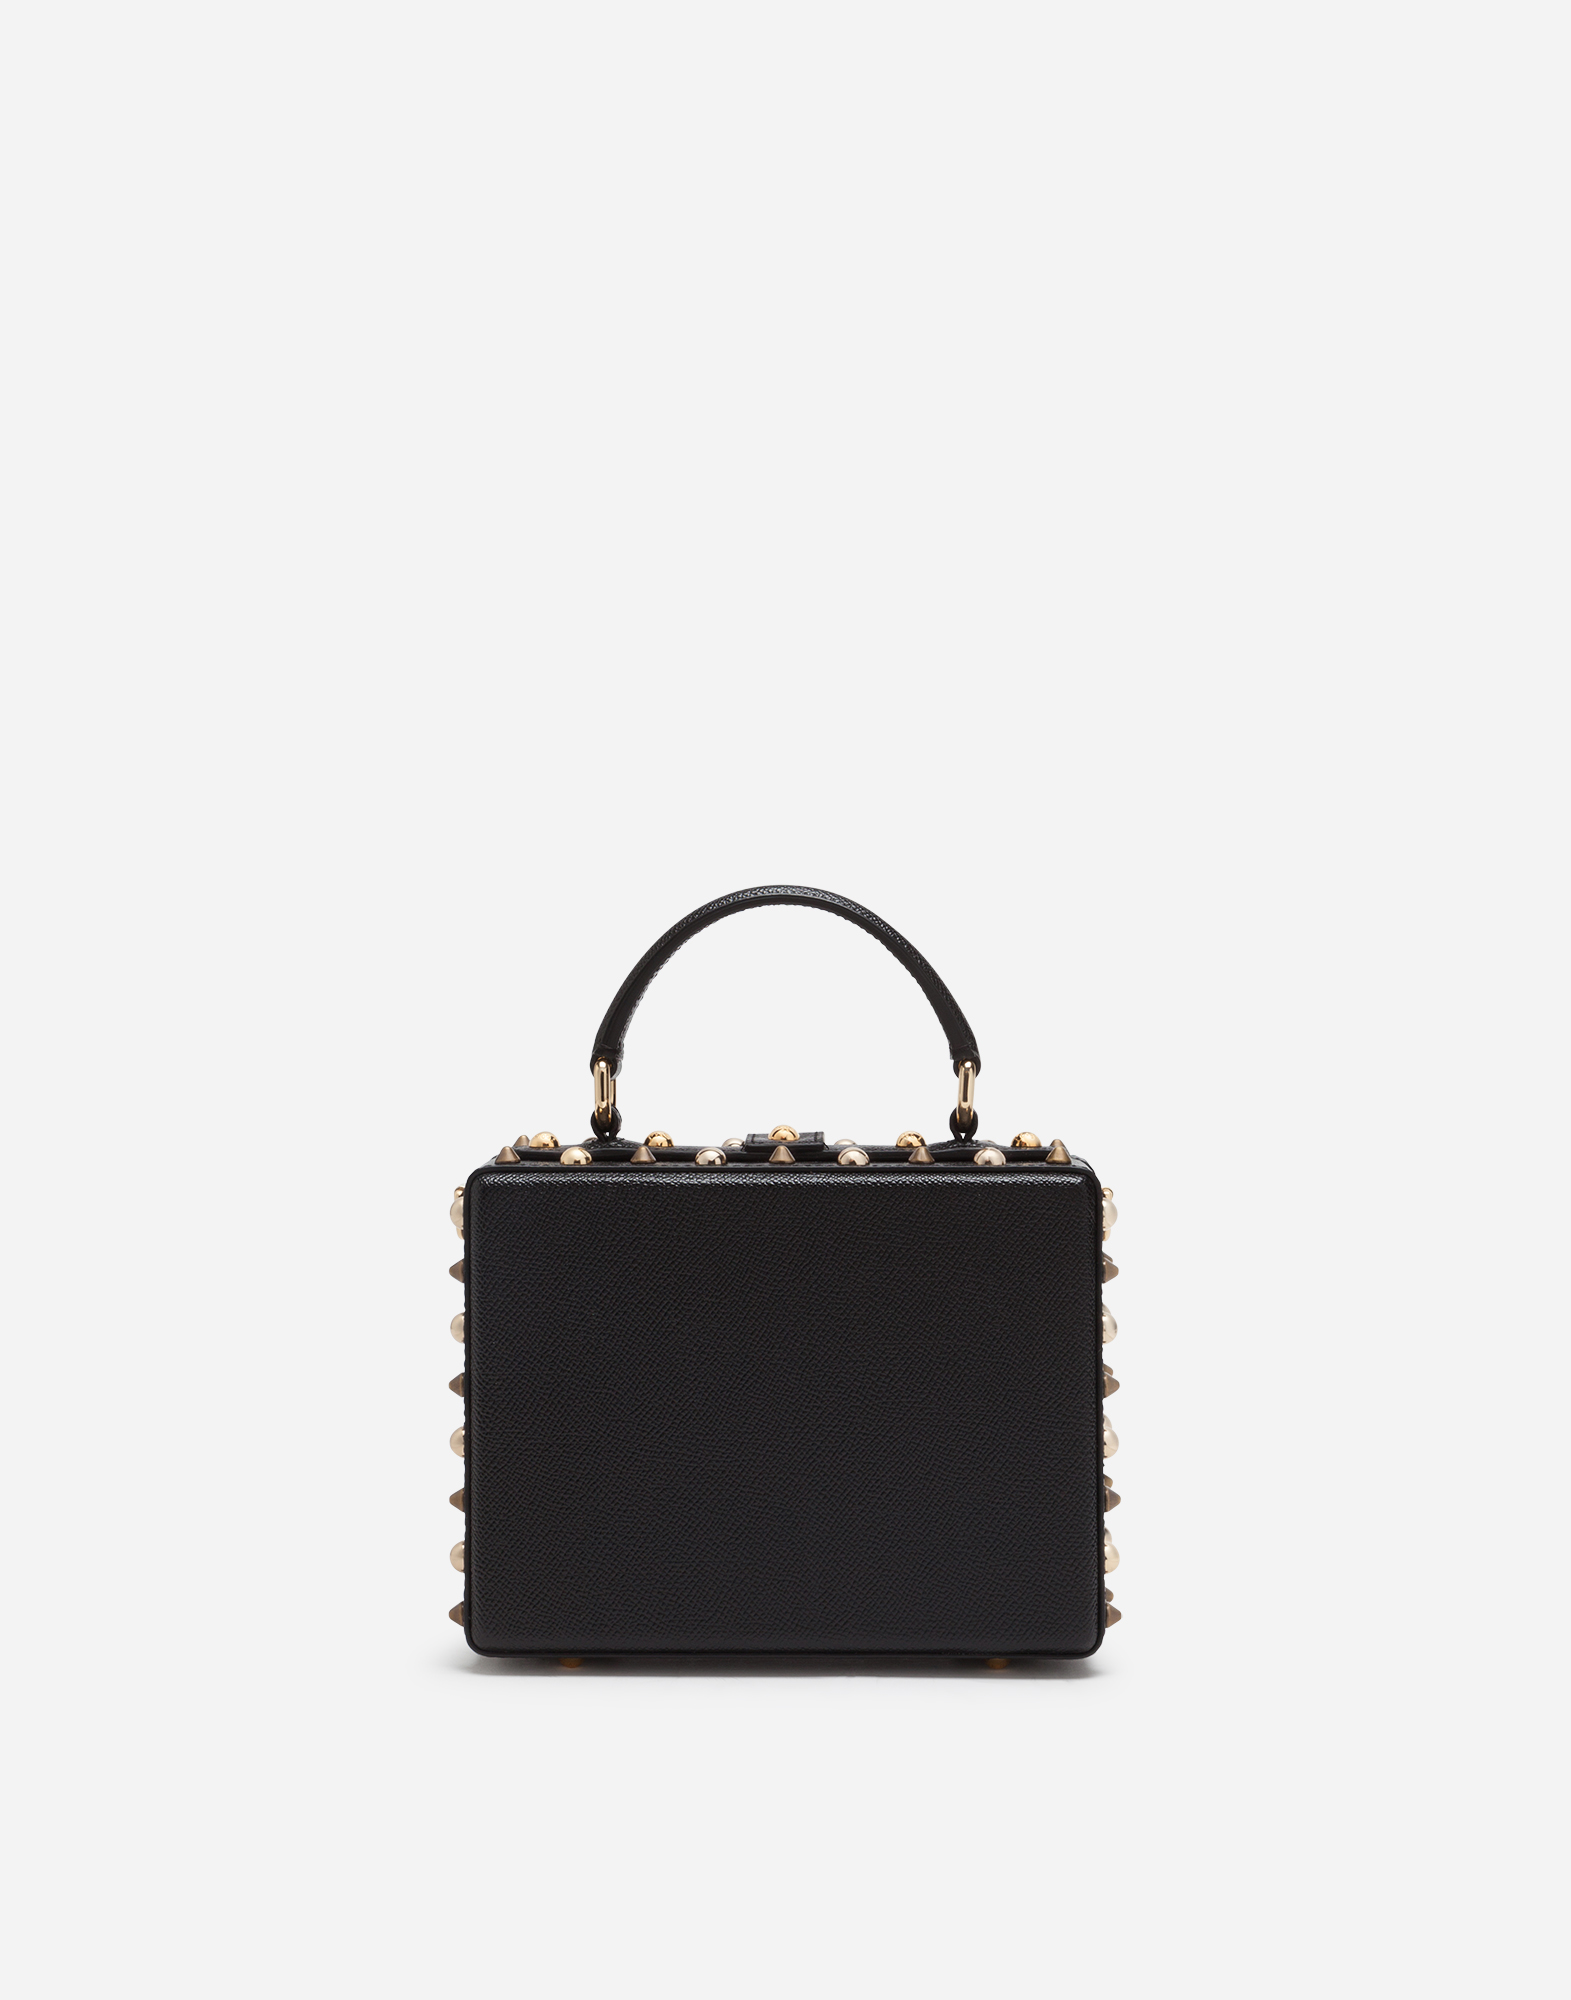 DOLCE BOX BAG IN DAUPHINE CALFSKIN WITH PATCH HEART